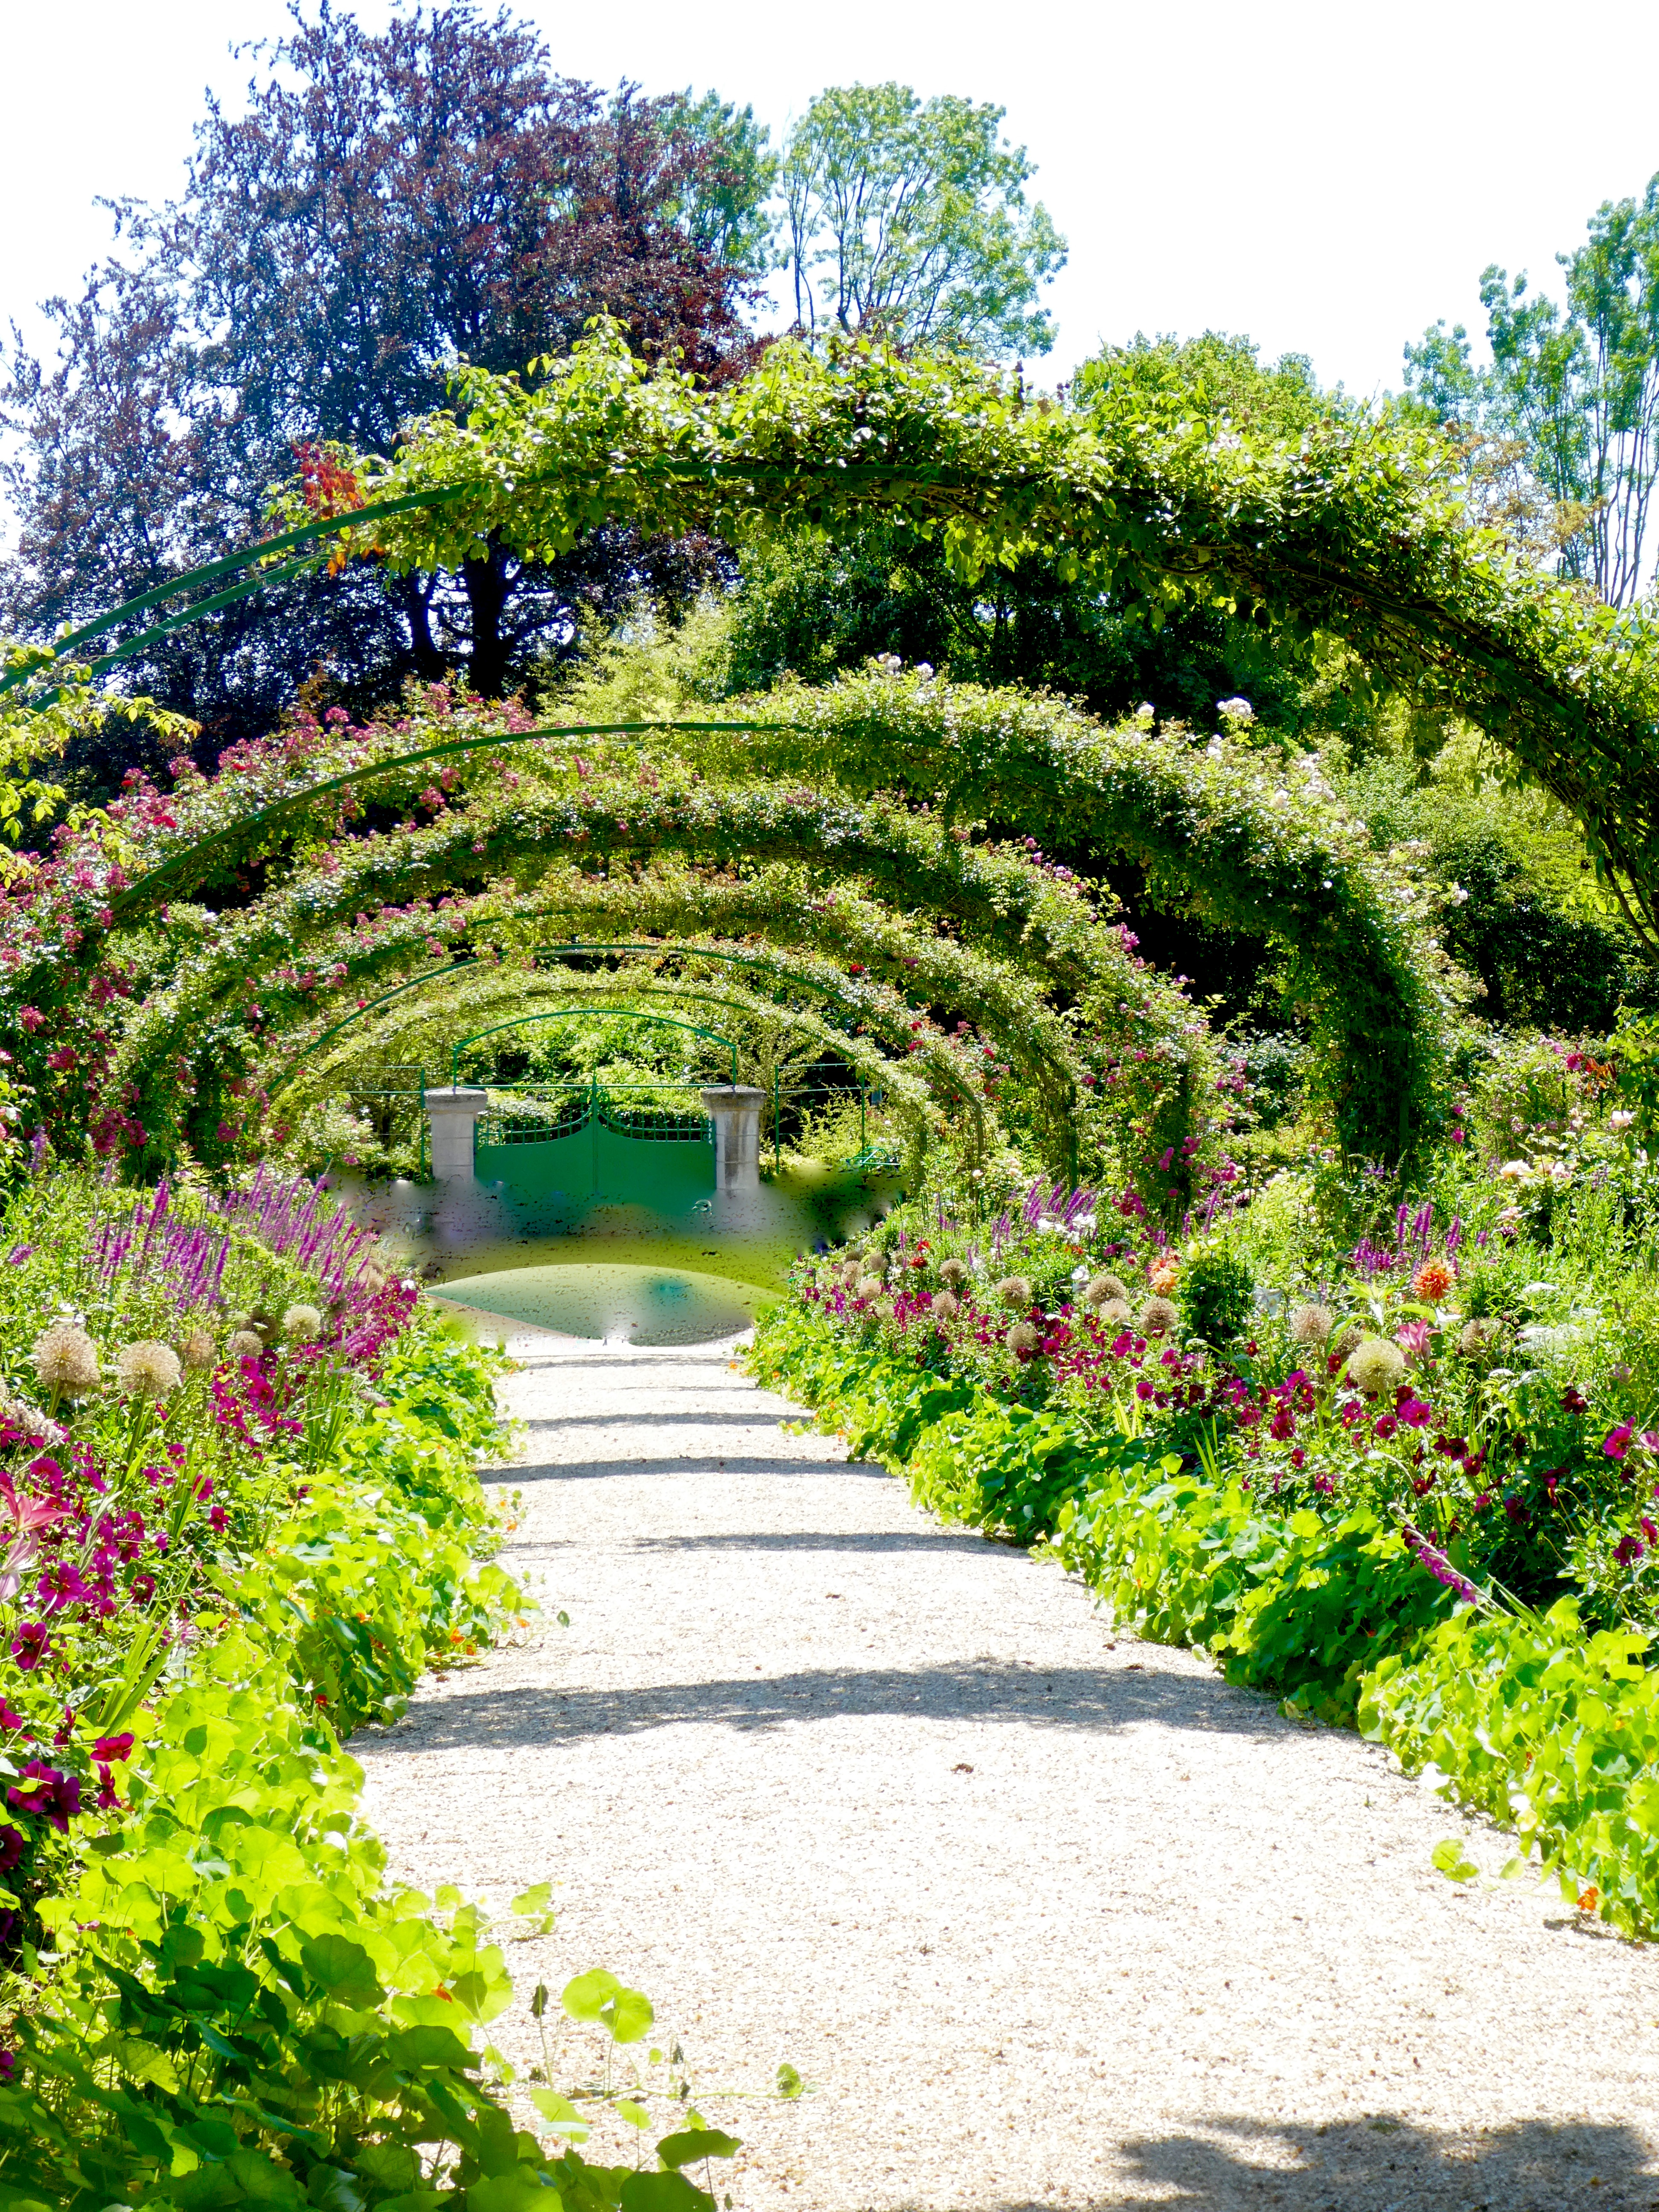 The Gardens Were So Beautiful, And In True Monet Style, All The Flowers  Were Mixed Together And Left To Their Own Devices! Although There Was Order  And ...